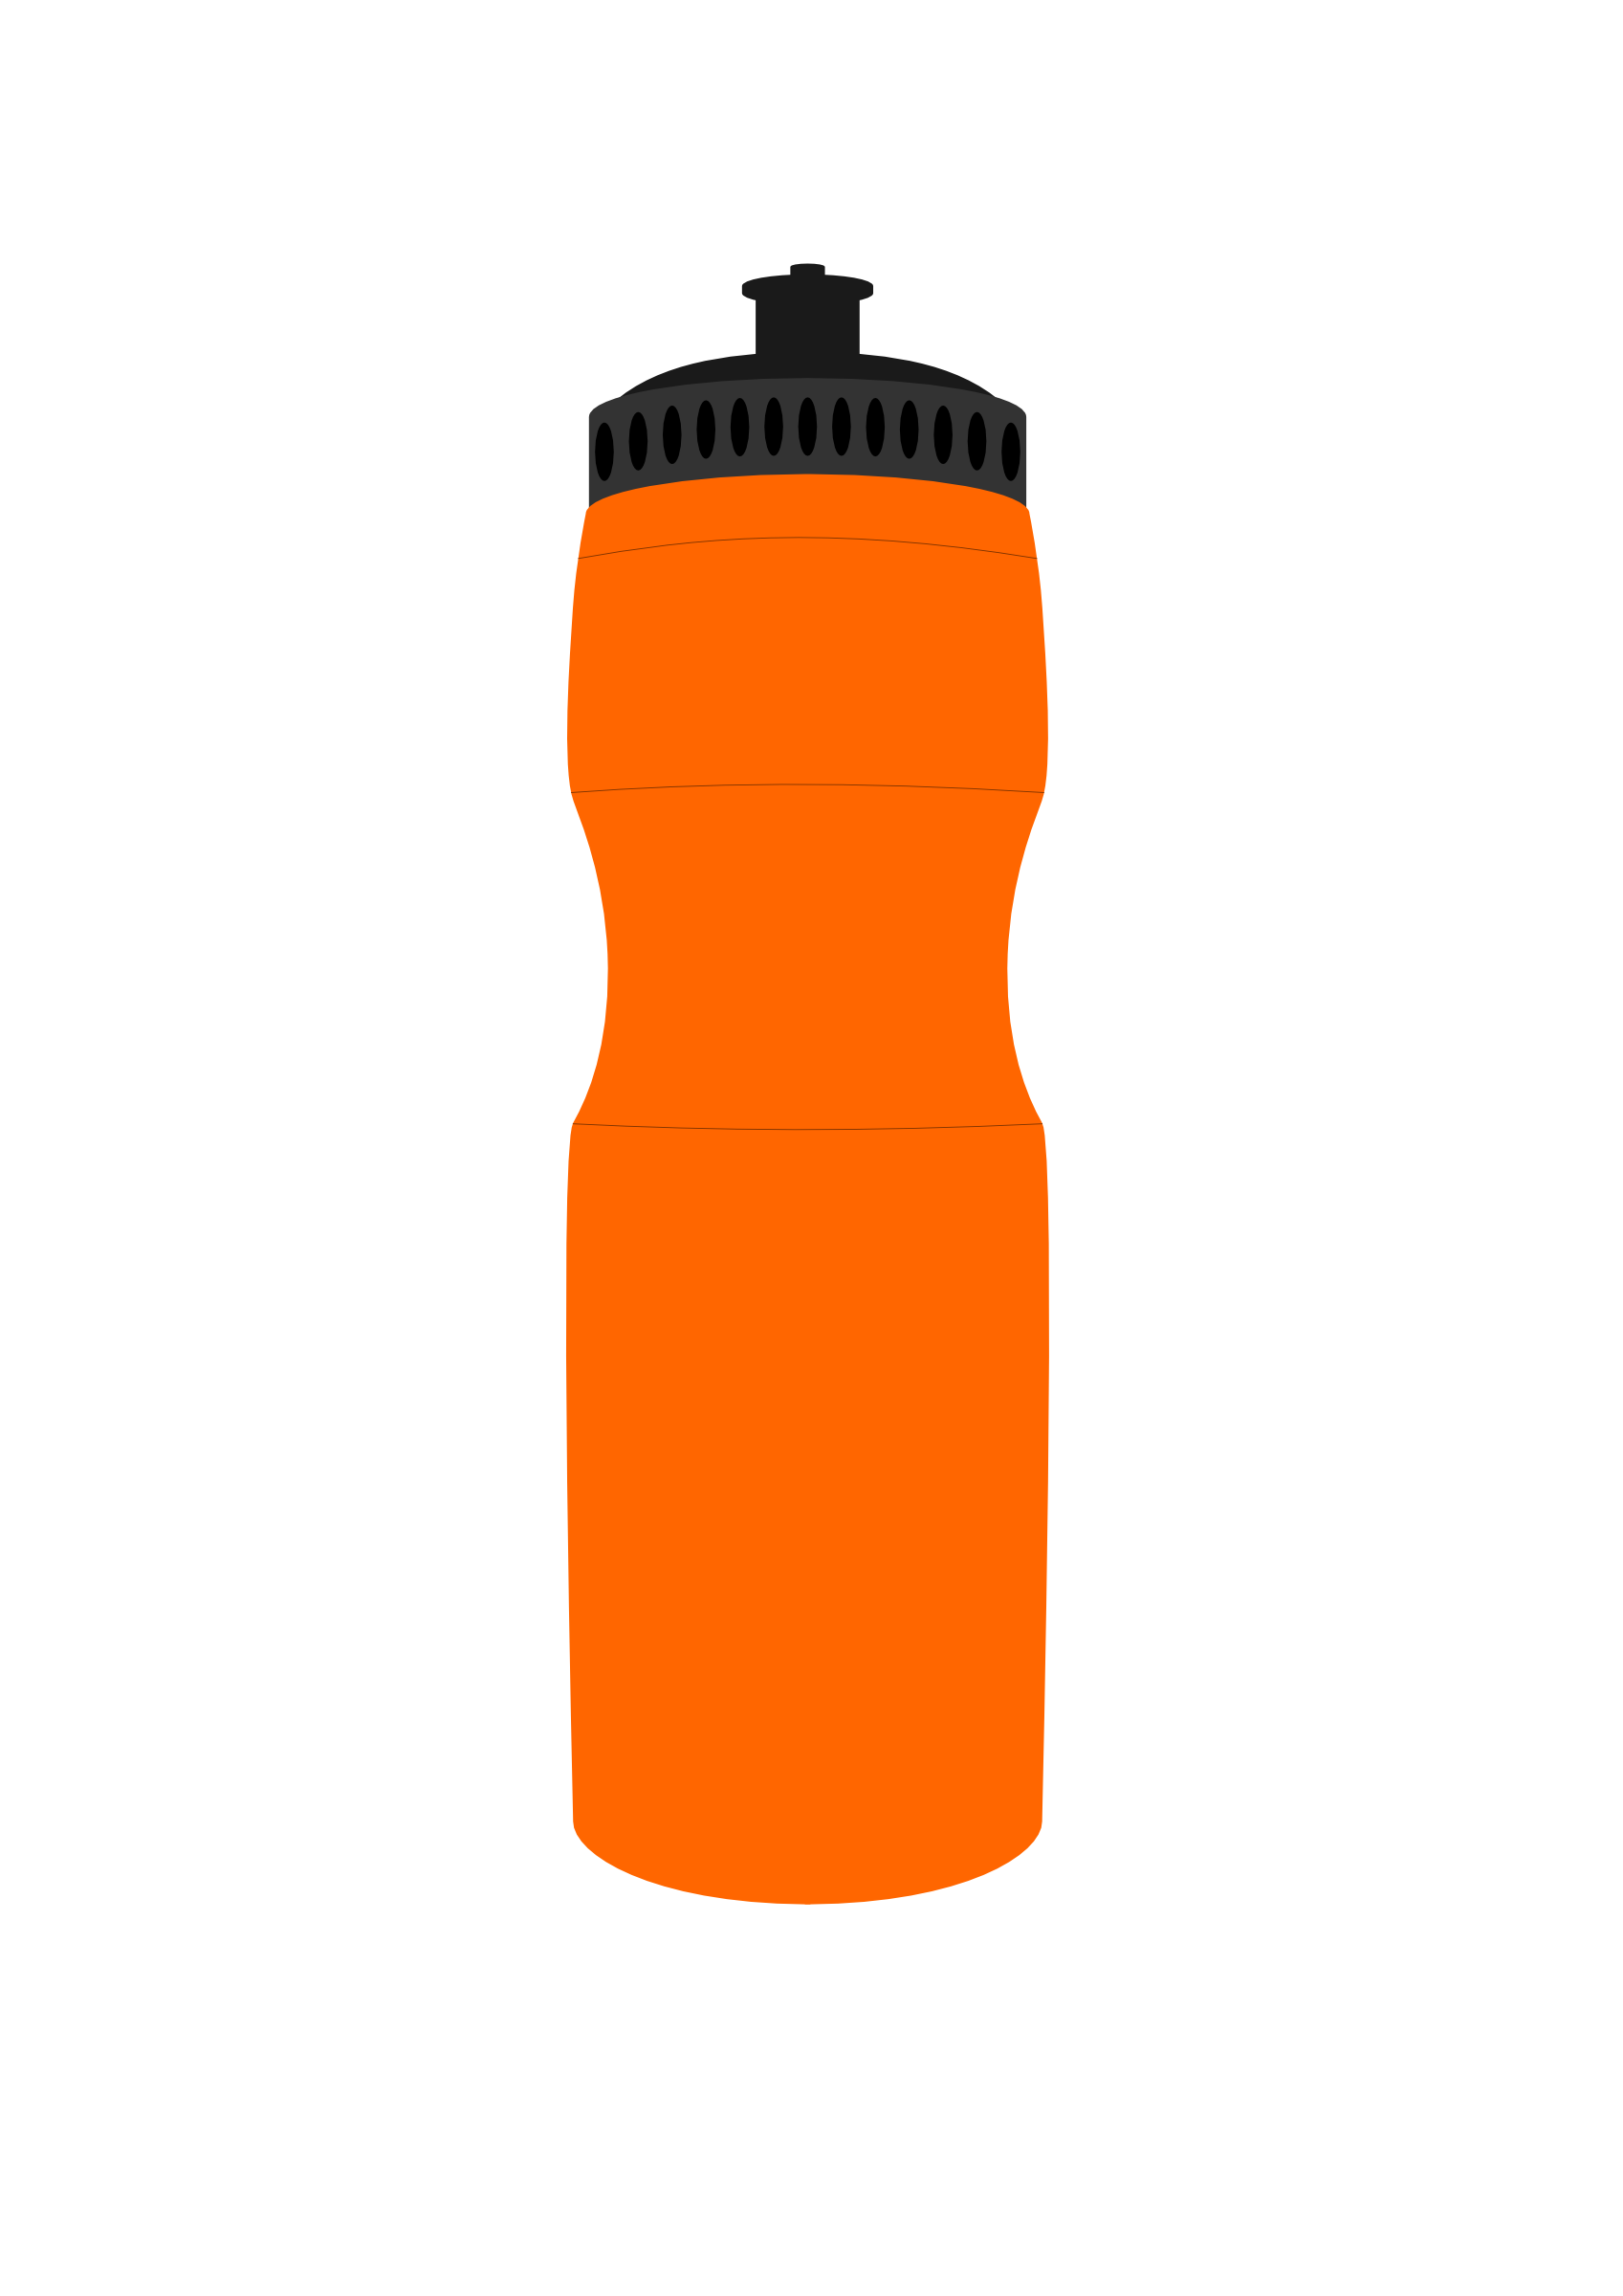 Bottle clipart #1, Download drawings